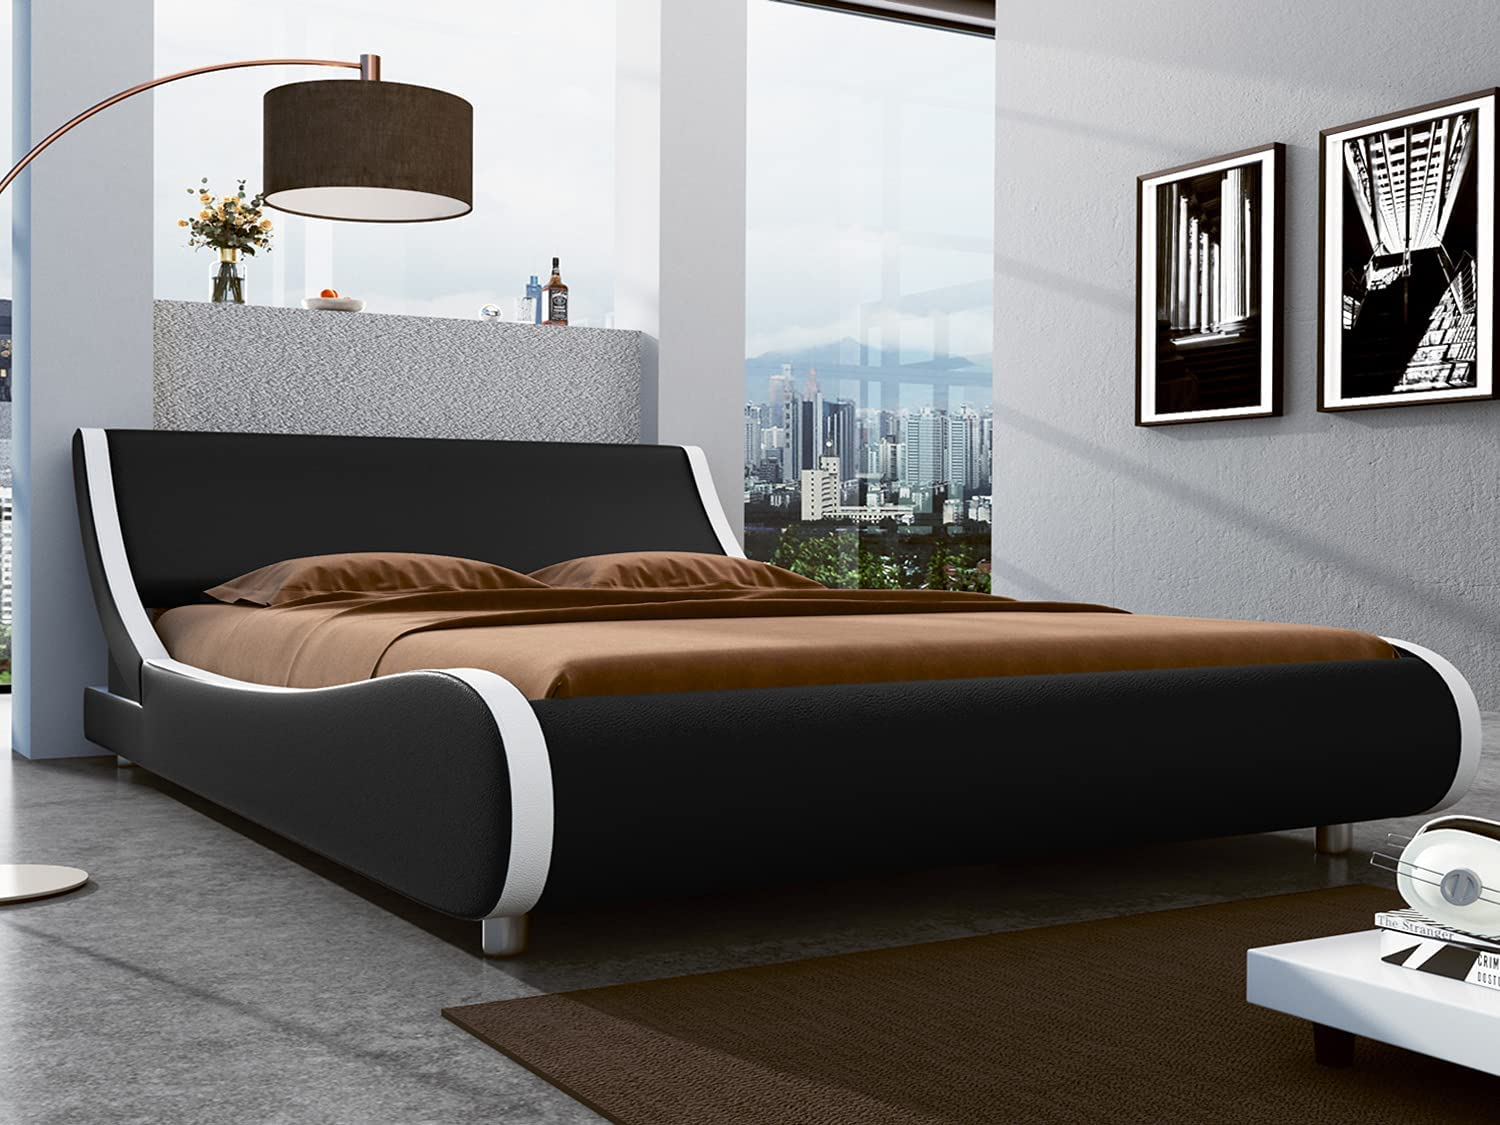 SHA CERLIN Queen Size Platform Bed, Faux Leather Low Profile Sleigh Bed Frame with Adjustable Headboard, Wood Slat Support, Black & White